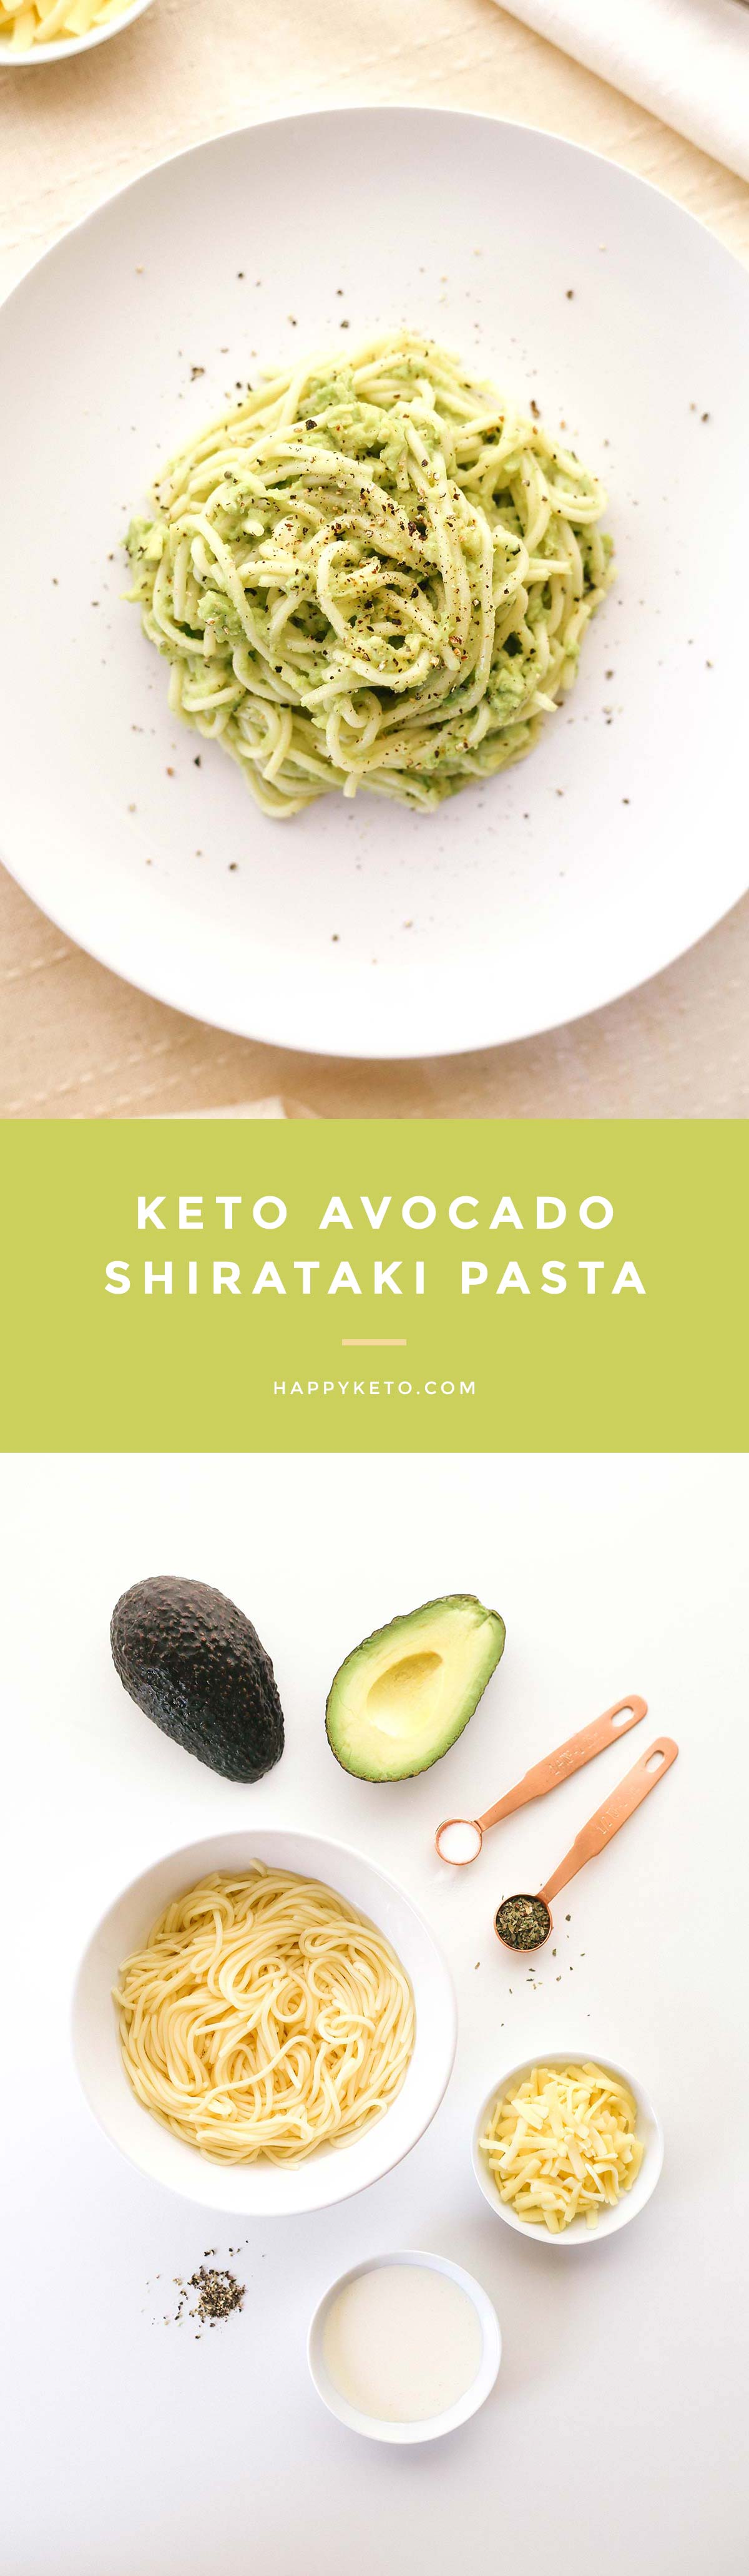 Avocado pasta for keto and low carb. Easy recipe with shirataki noodles.